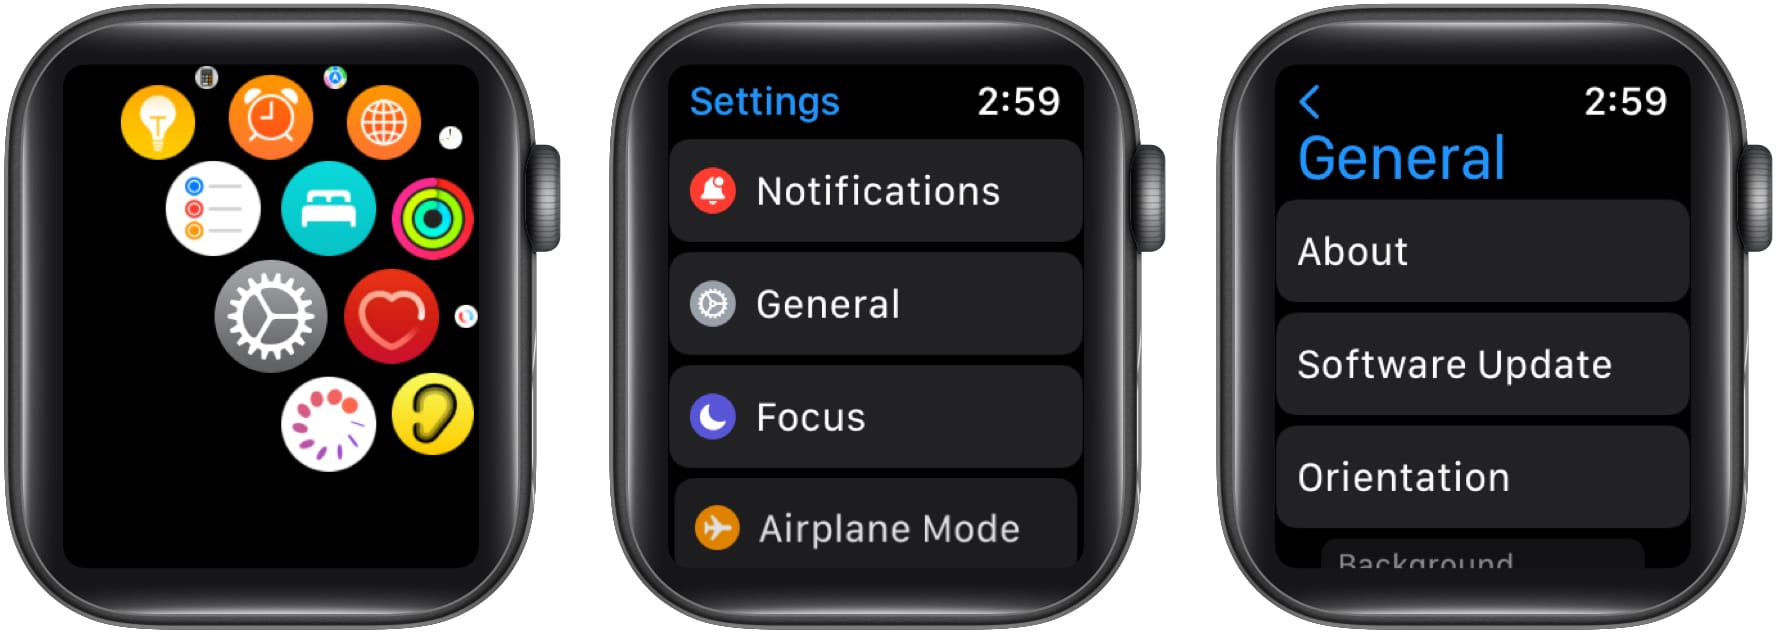 Choose Software Update from general settings from Apple Watch